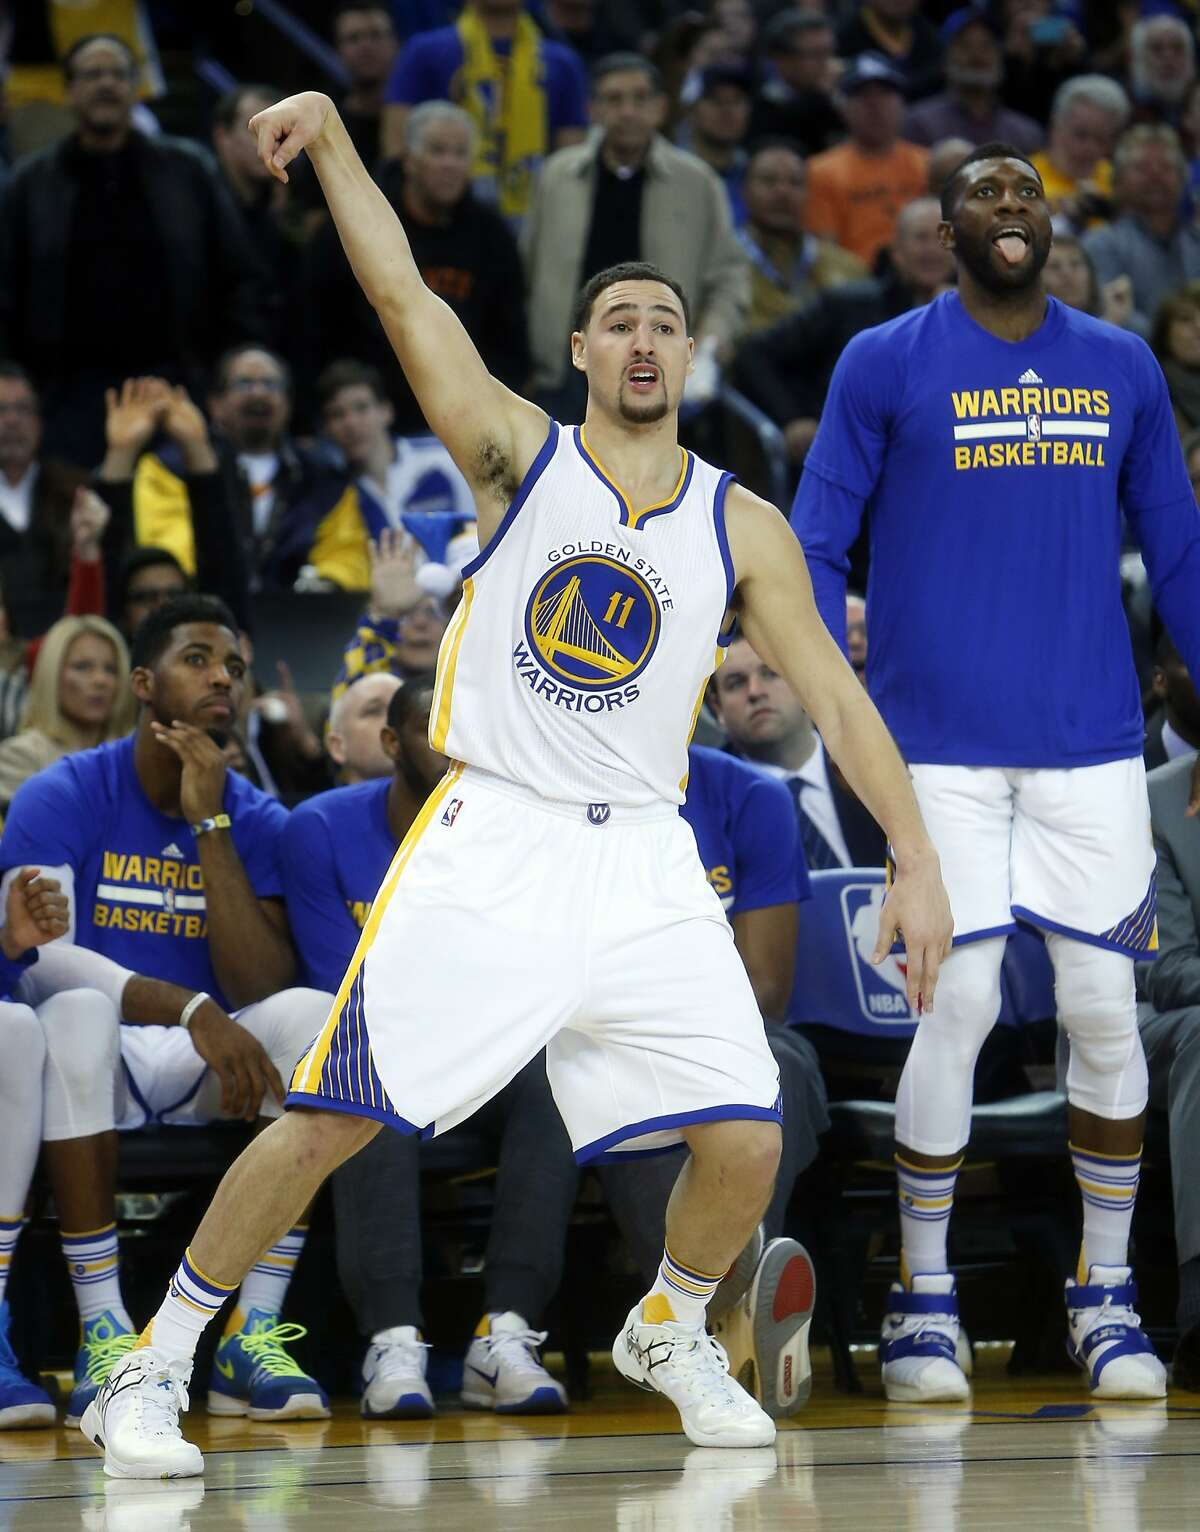 Golden State Warriors' Klay Thompson hits a 3-pointer in 3rd quarter against Phoenix Suns in NBA game at Oracle Arena in Oakland, Calif., on Wednesday, December 16, 2015.